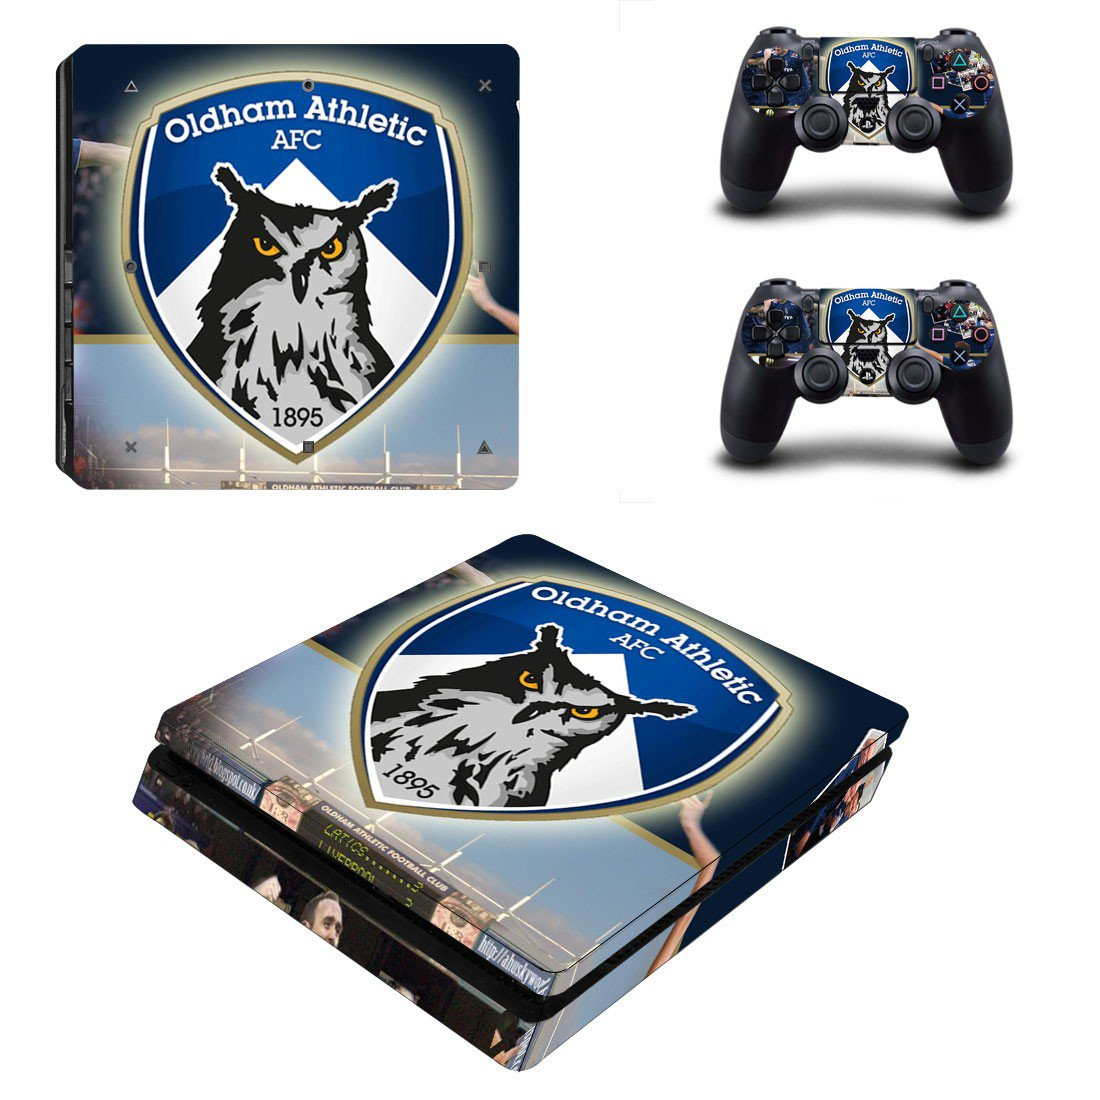 Oldham athletic AFC ps4 slim edition skin decal for console and controllers